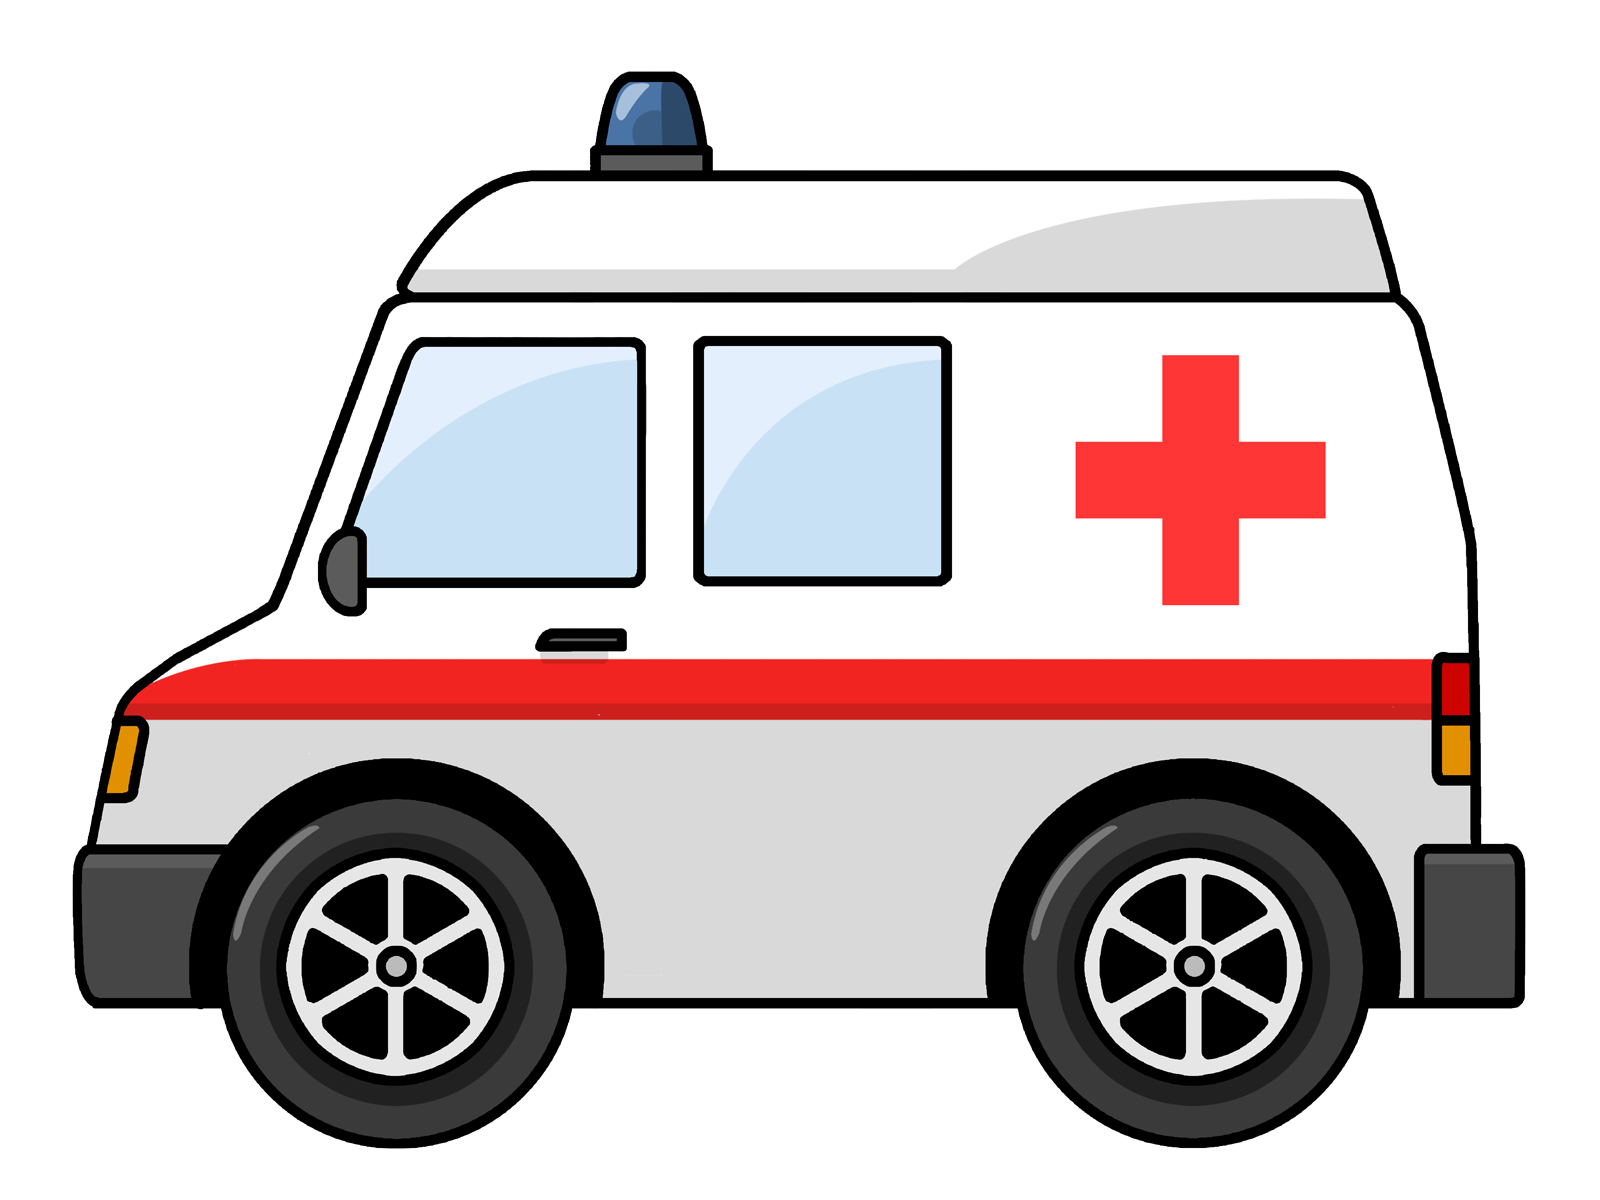 Ambulance car clipart svg royalty free Police Car Silhouette at GetDrawings.com | Free for personal use ... svg royalty free